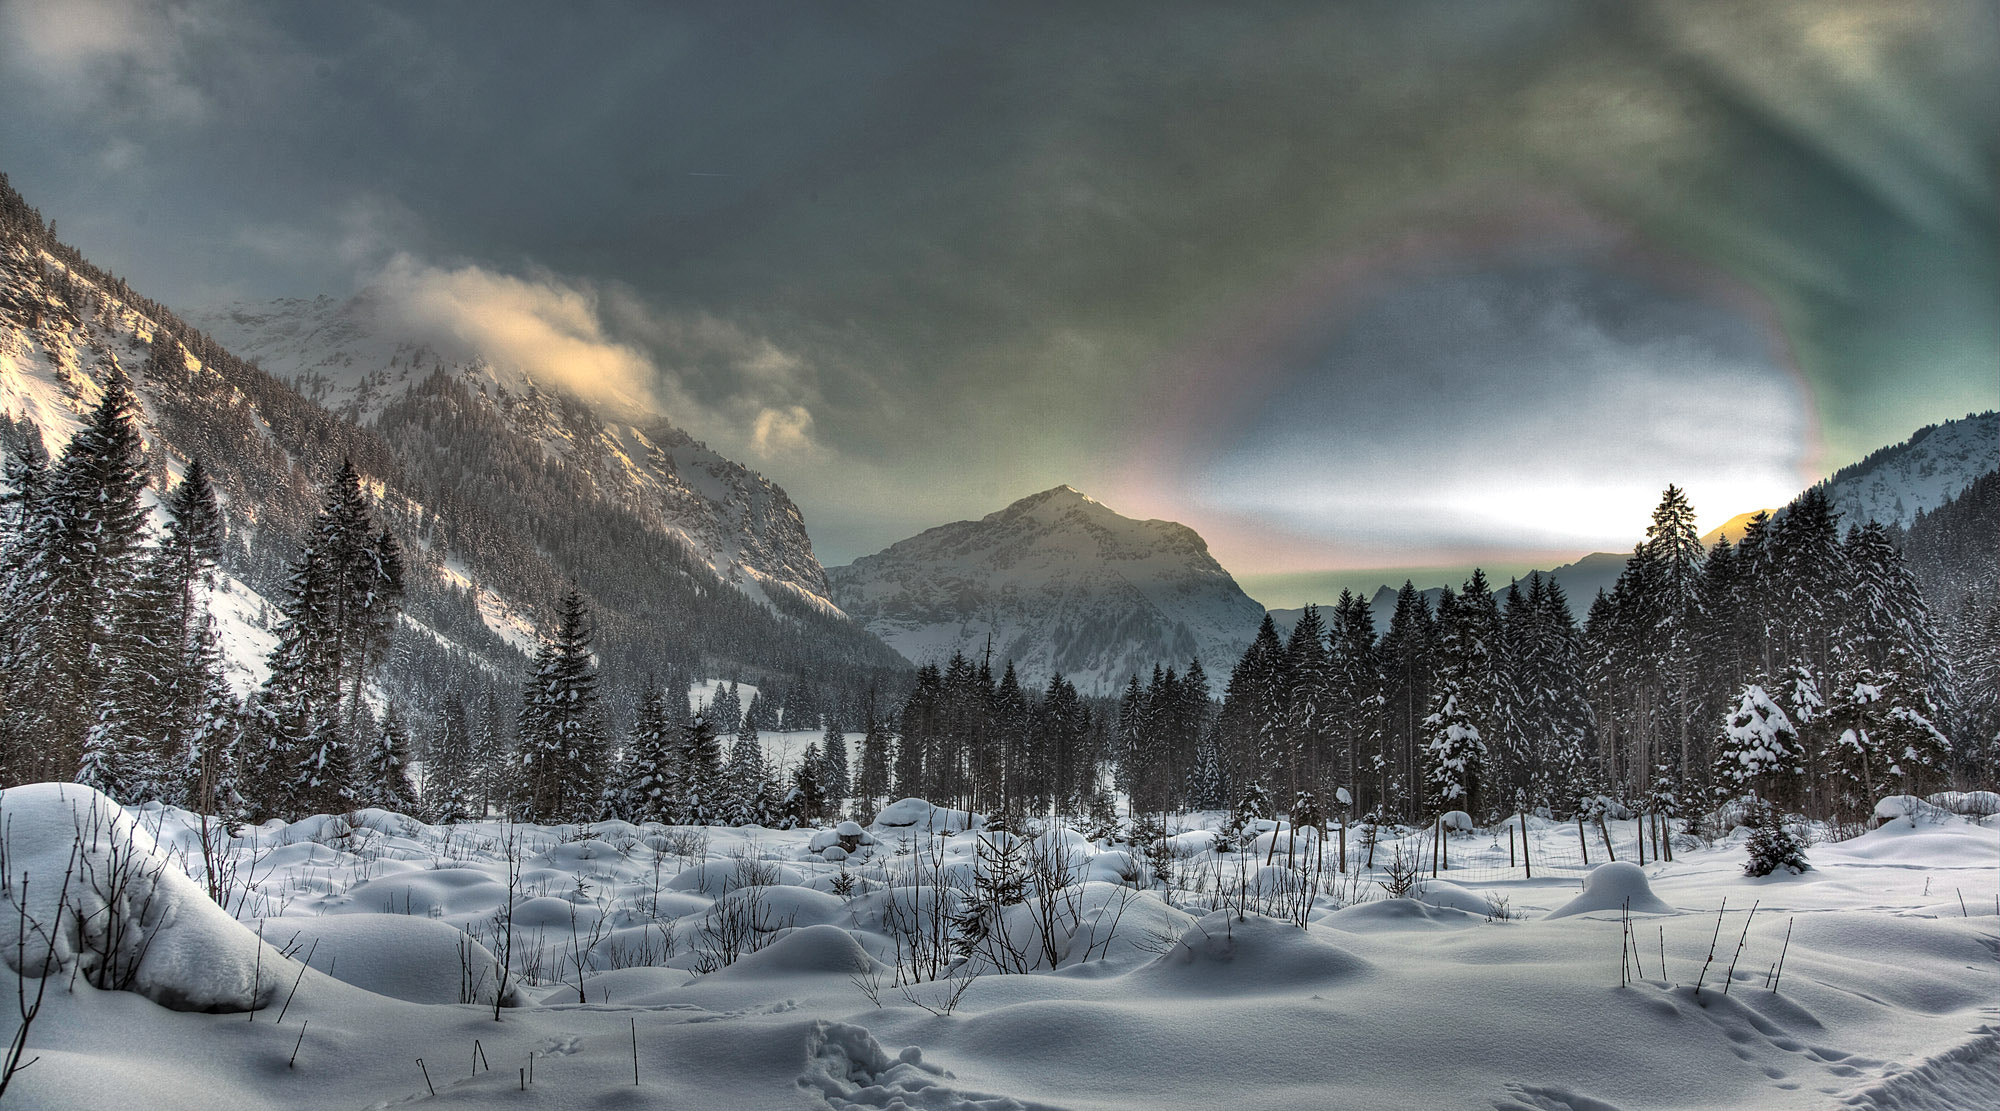 Photograph tannheimhdr by Sören Hoven on 500px